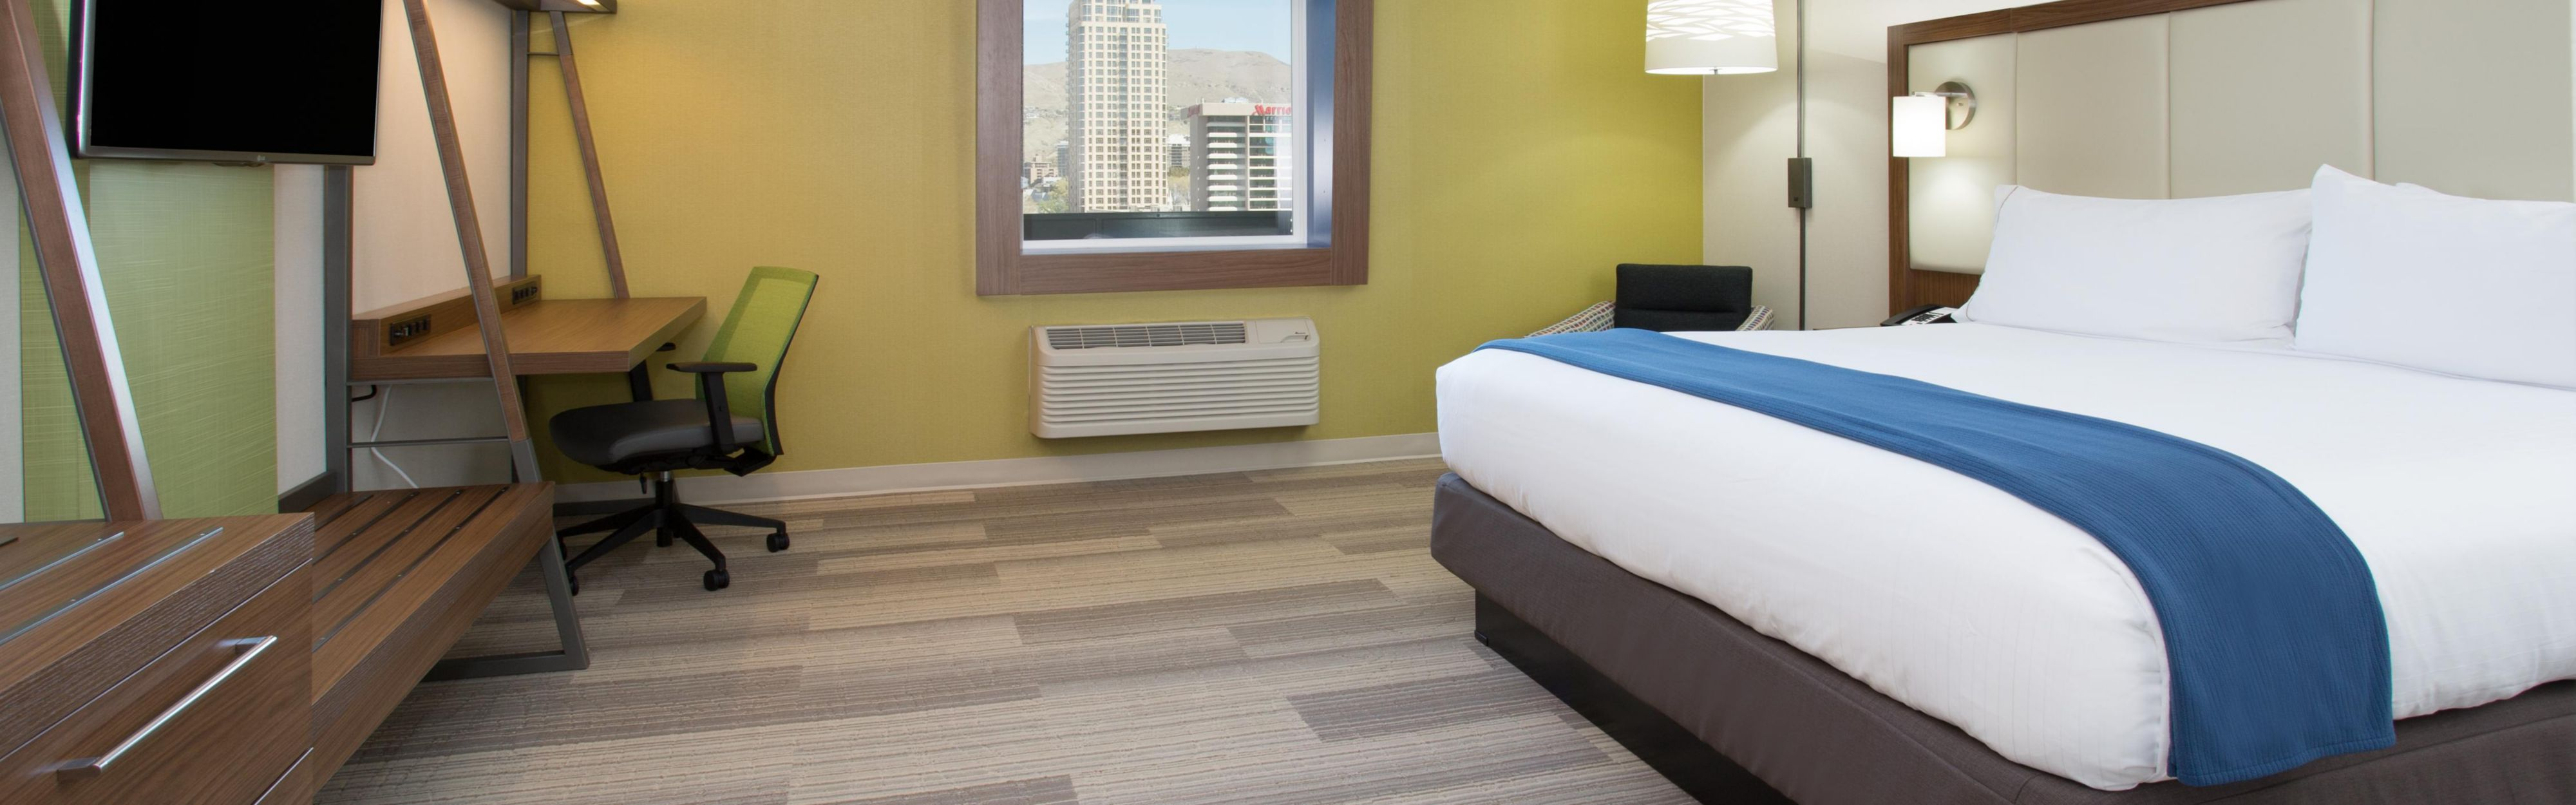 Holiday Inn Express & Suites Lee's Summit - Kansas City image 1